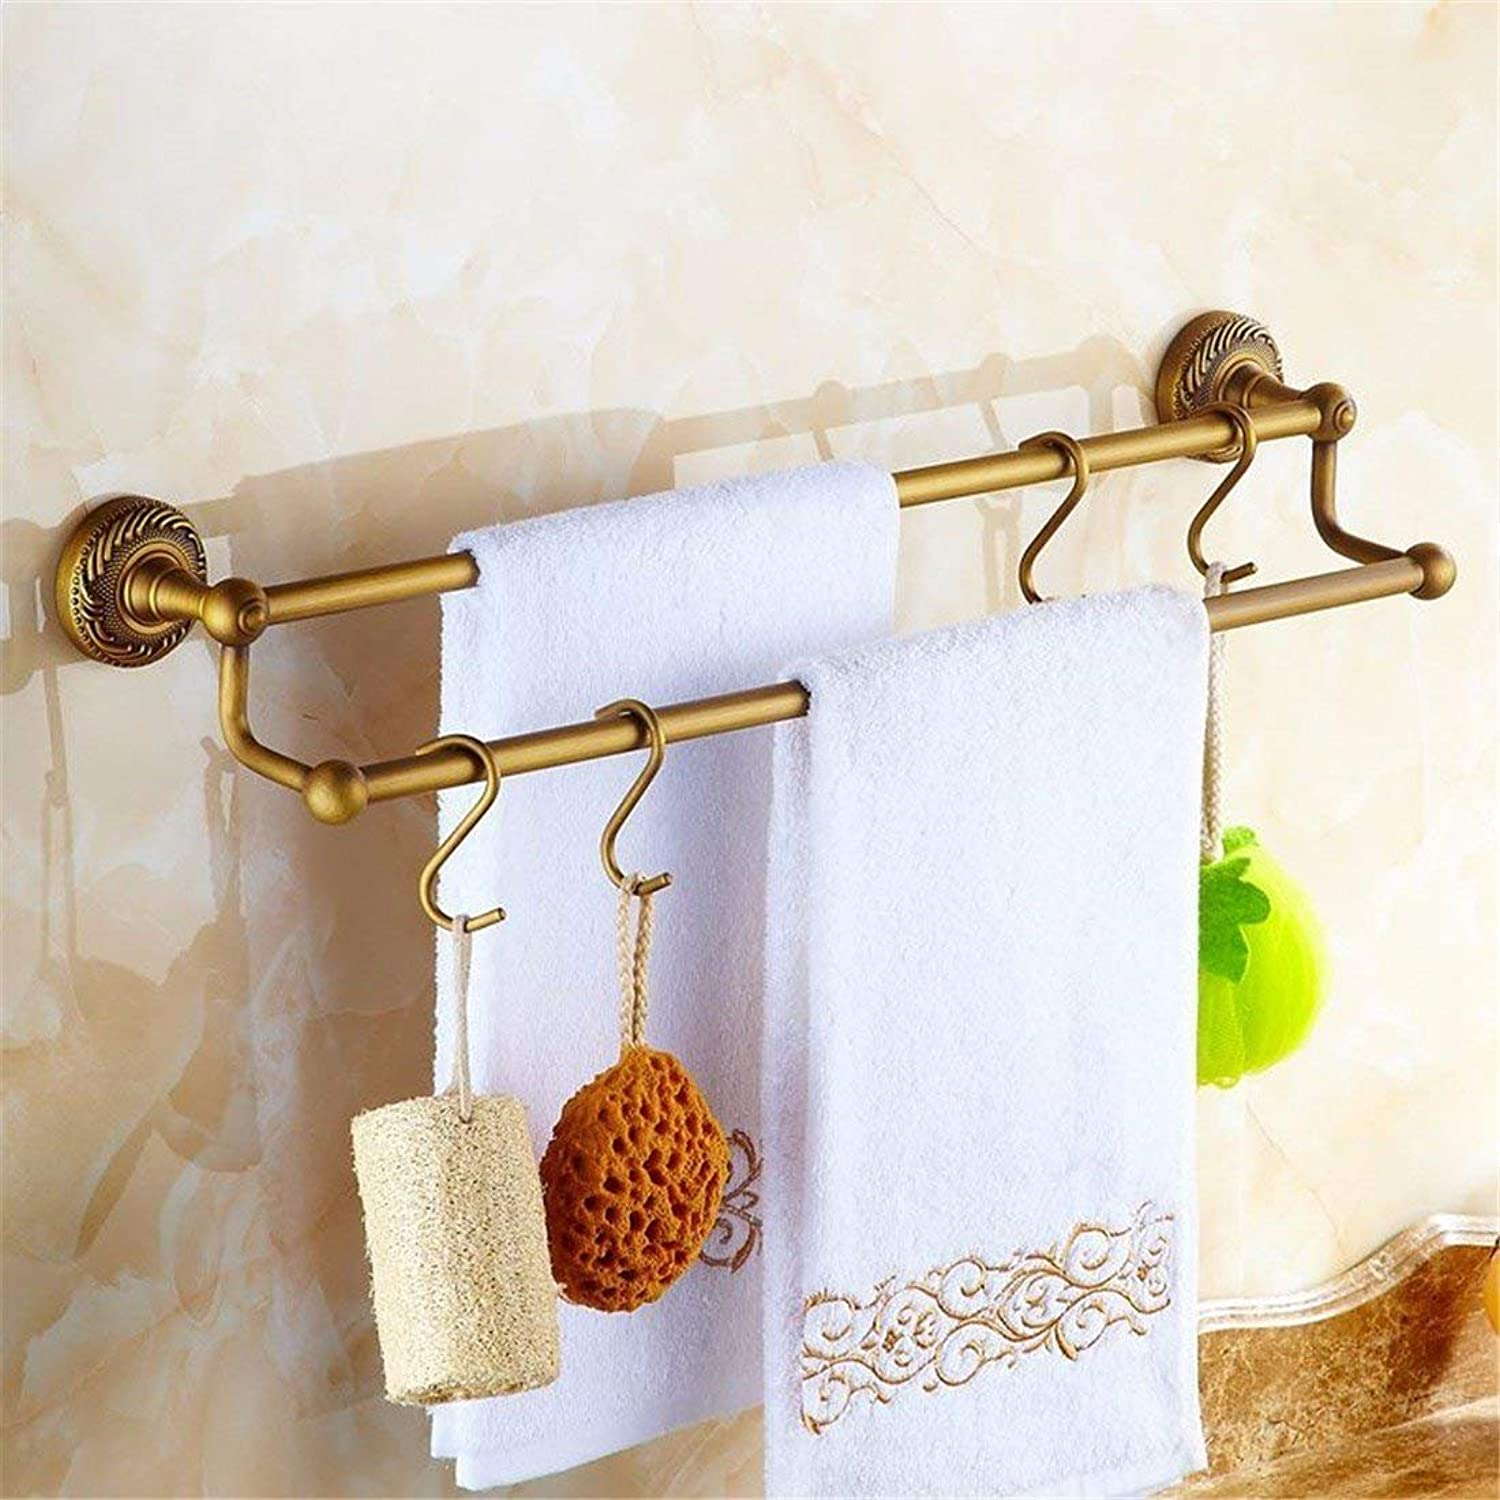 European Style of Christmas All The Copper Fittings Antique Carved Bathroom, soap Fort Dry-Towels Double-pin, 2